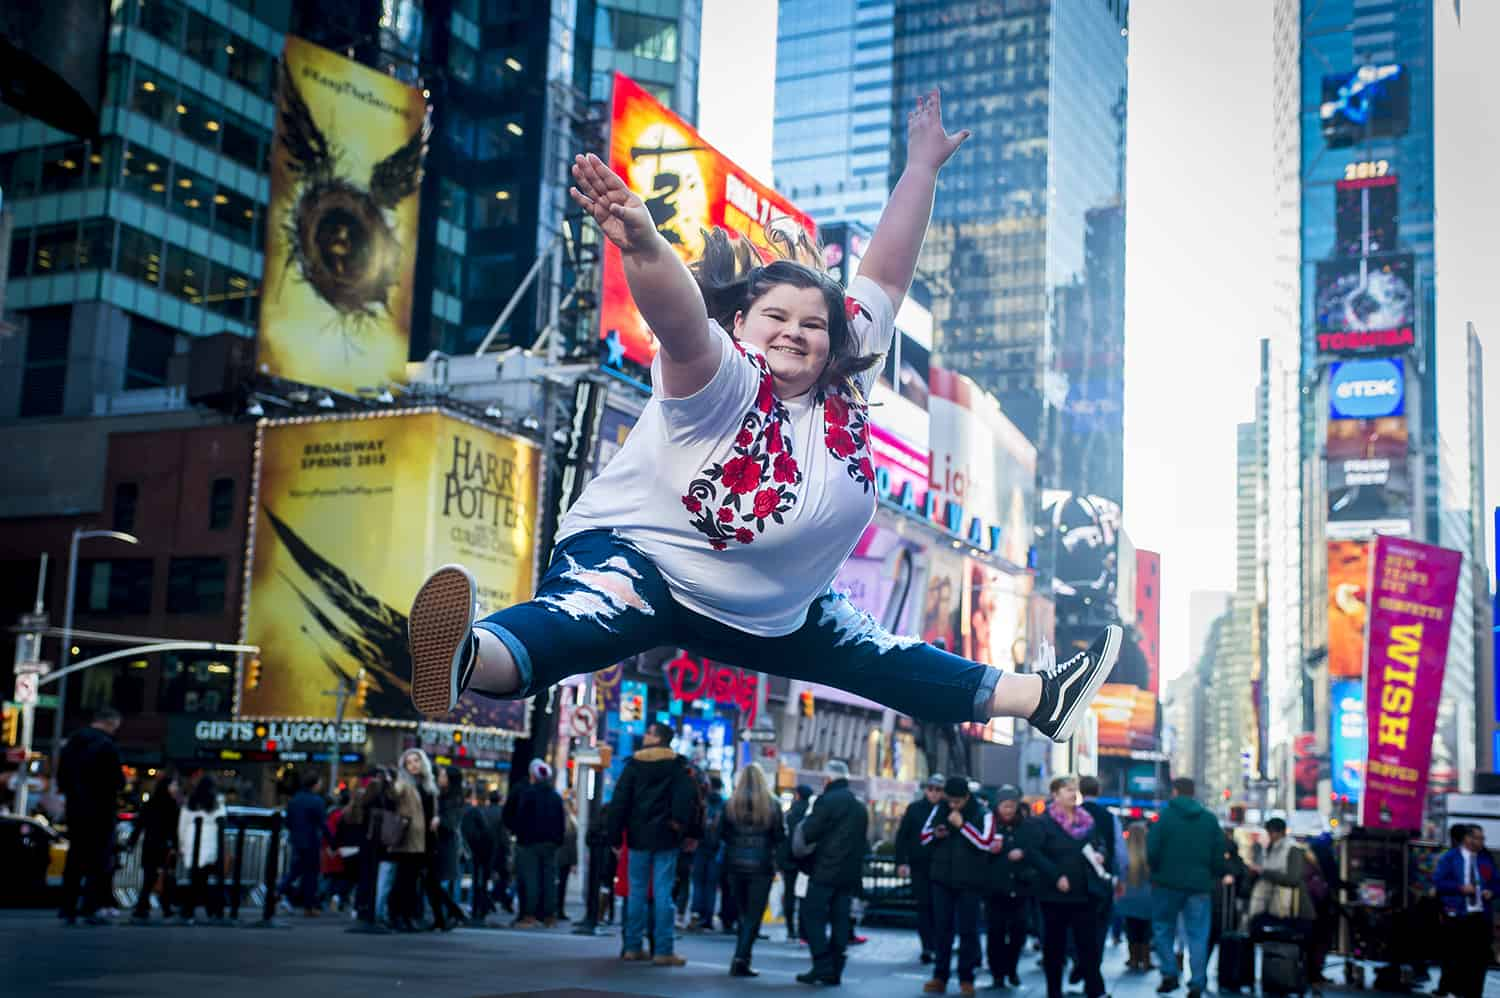 lizzy howell does a split jump in New York Times Square